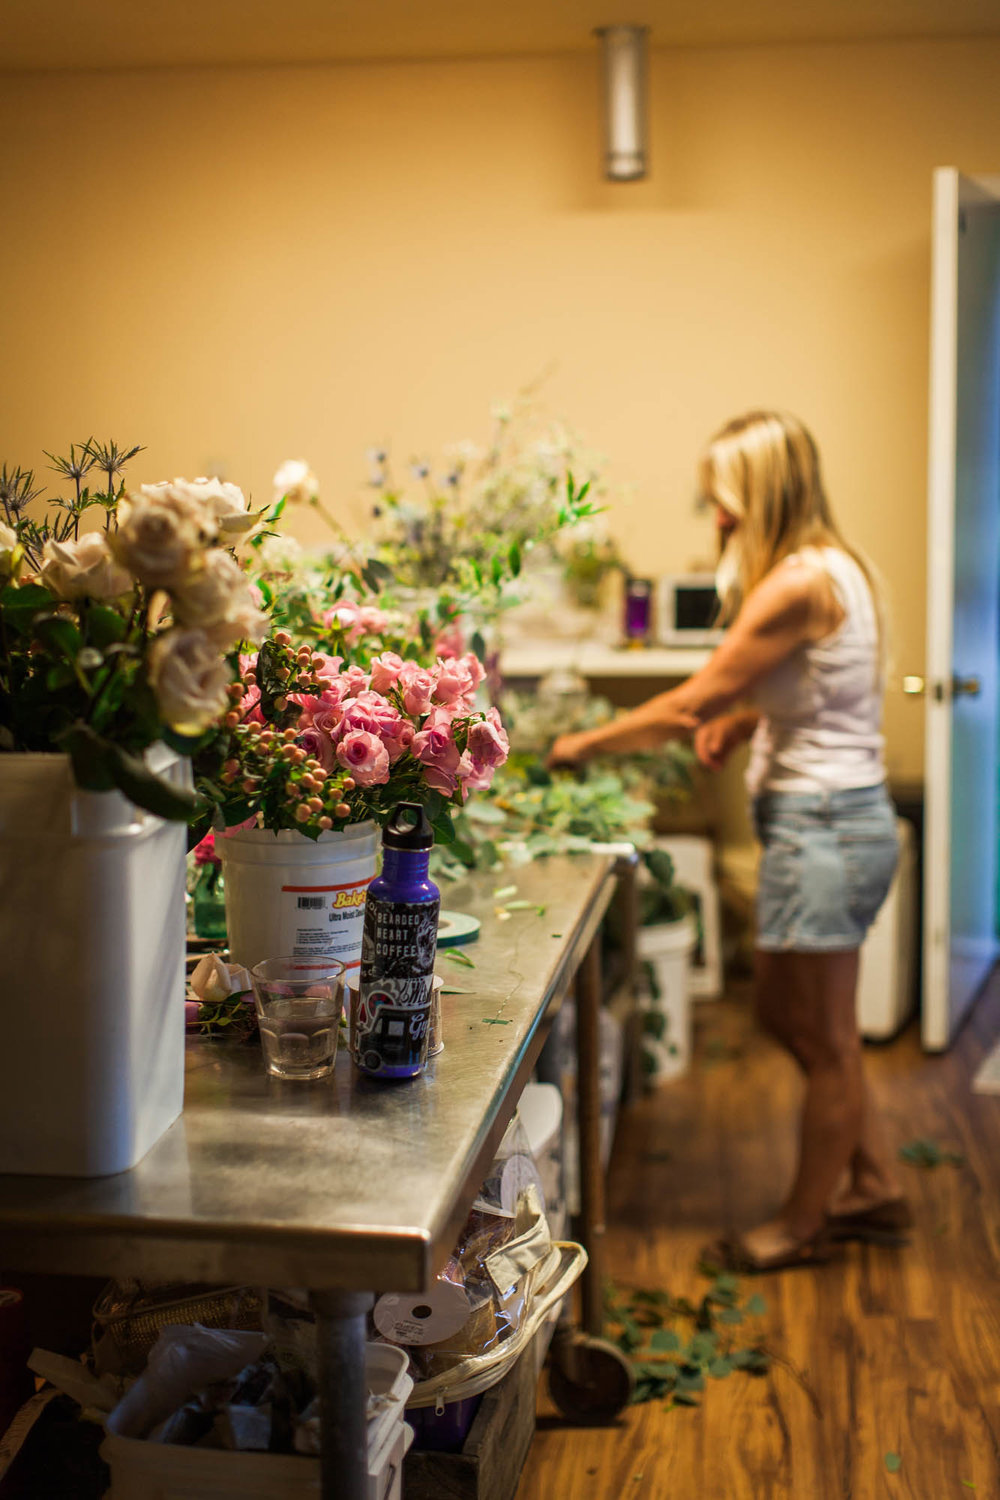 Granny Jo cleaning up after a long day of floral design in our Sister Bay workshop.  Photo Credit: Artemis Photography